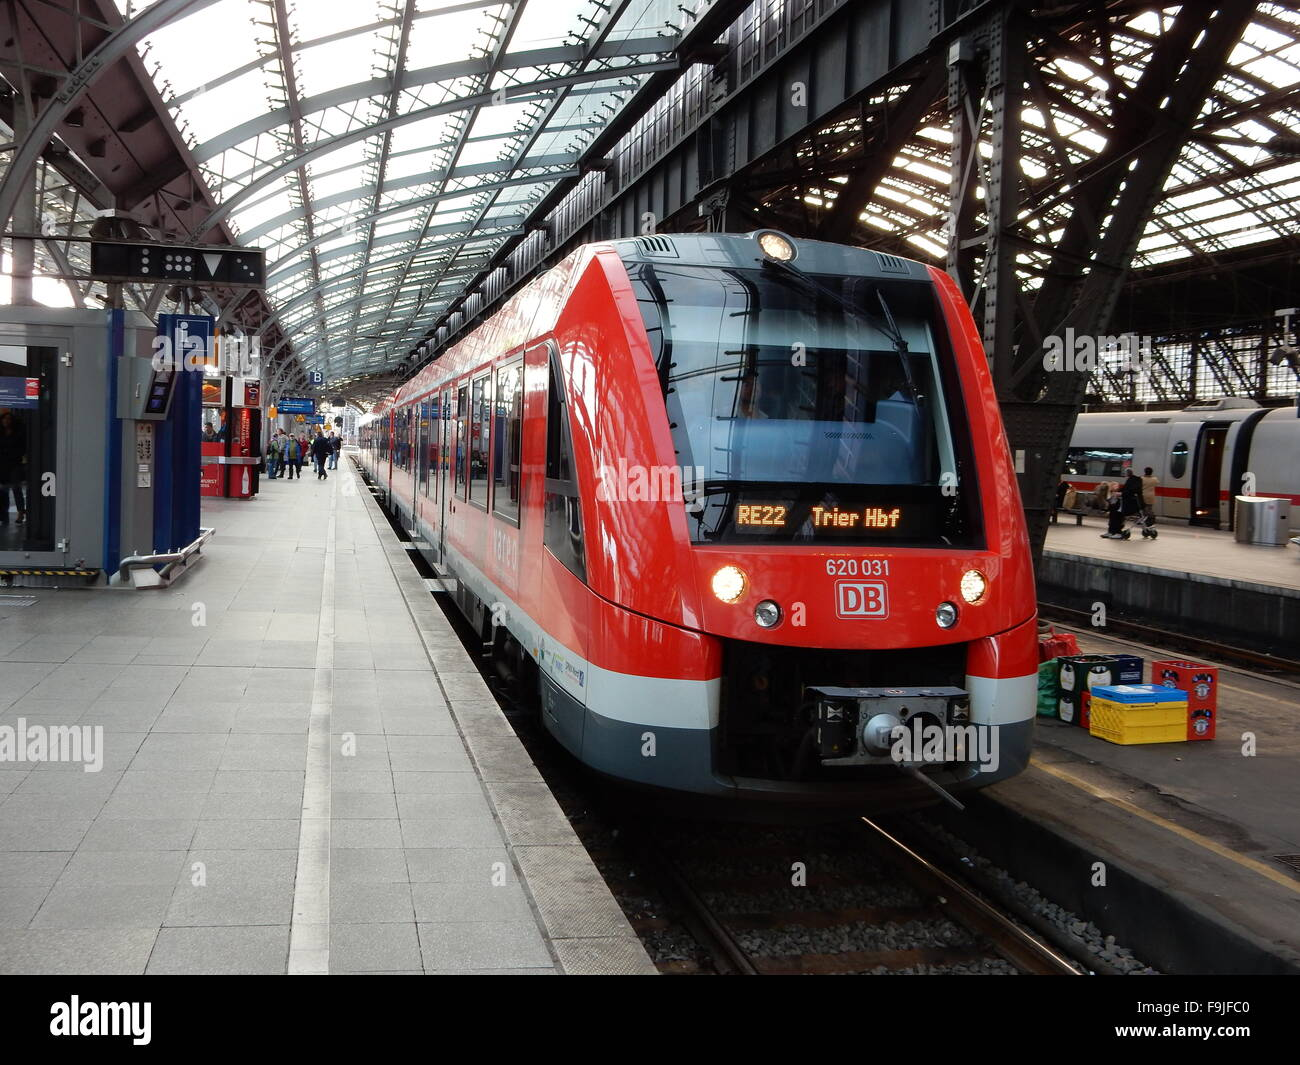 Central Station, Cologne, Germany, with a train at the platform - Stock Image